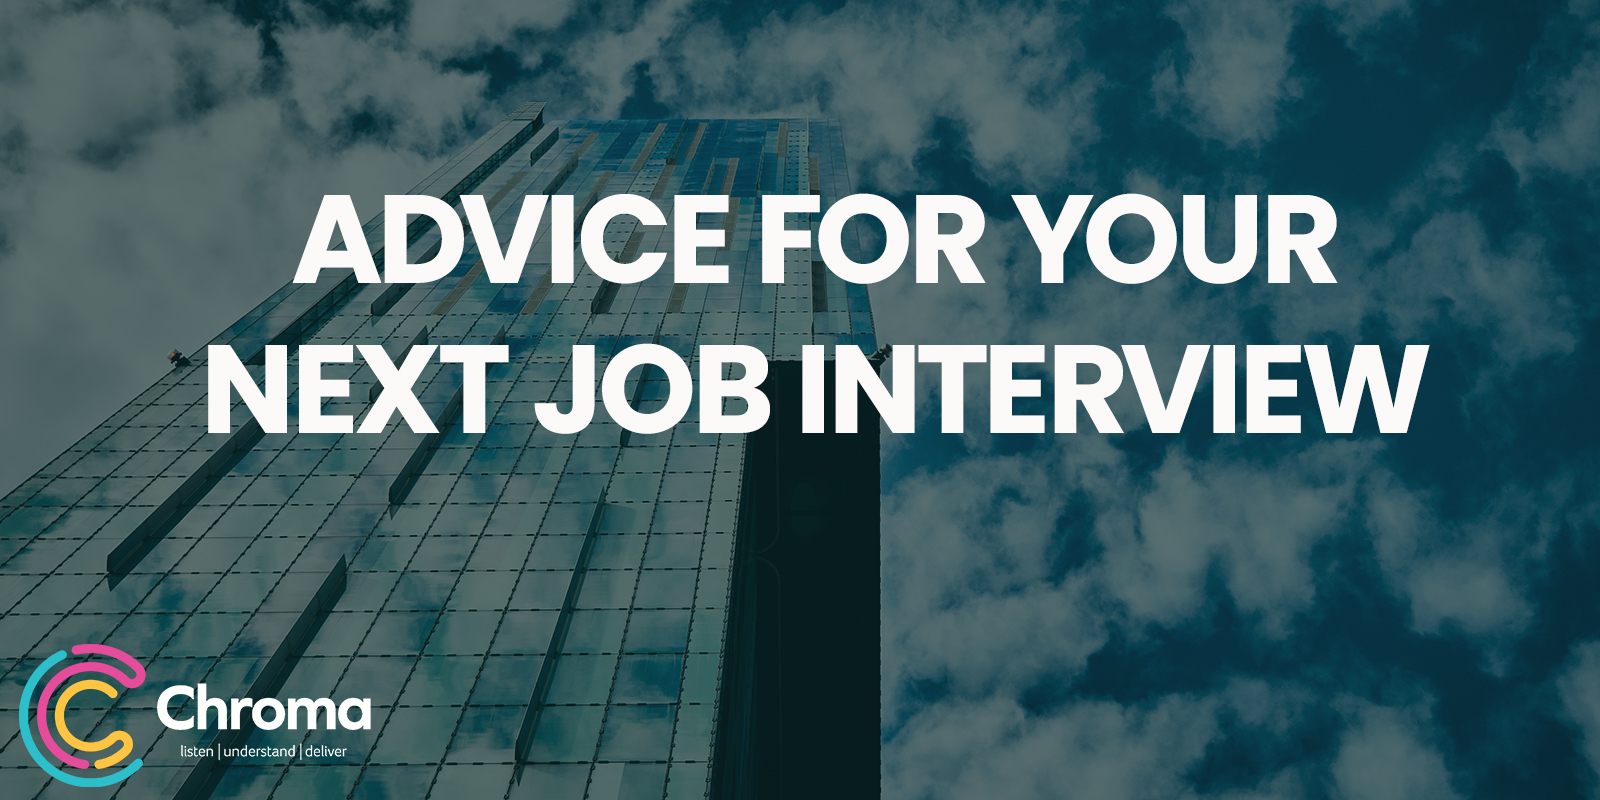 Advice for Your Next Job Interview